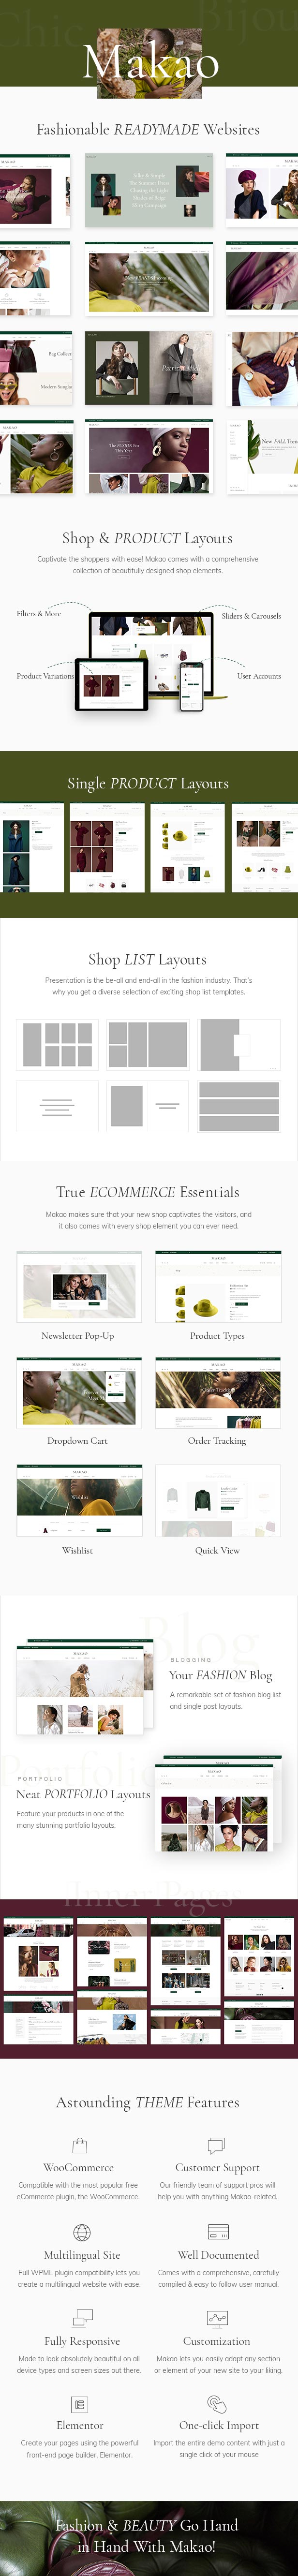 Makao - Fashion Shop WordPress Theme - 2